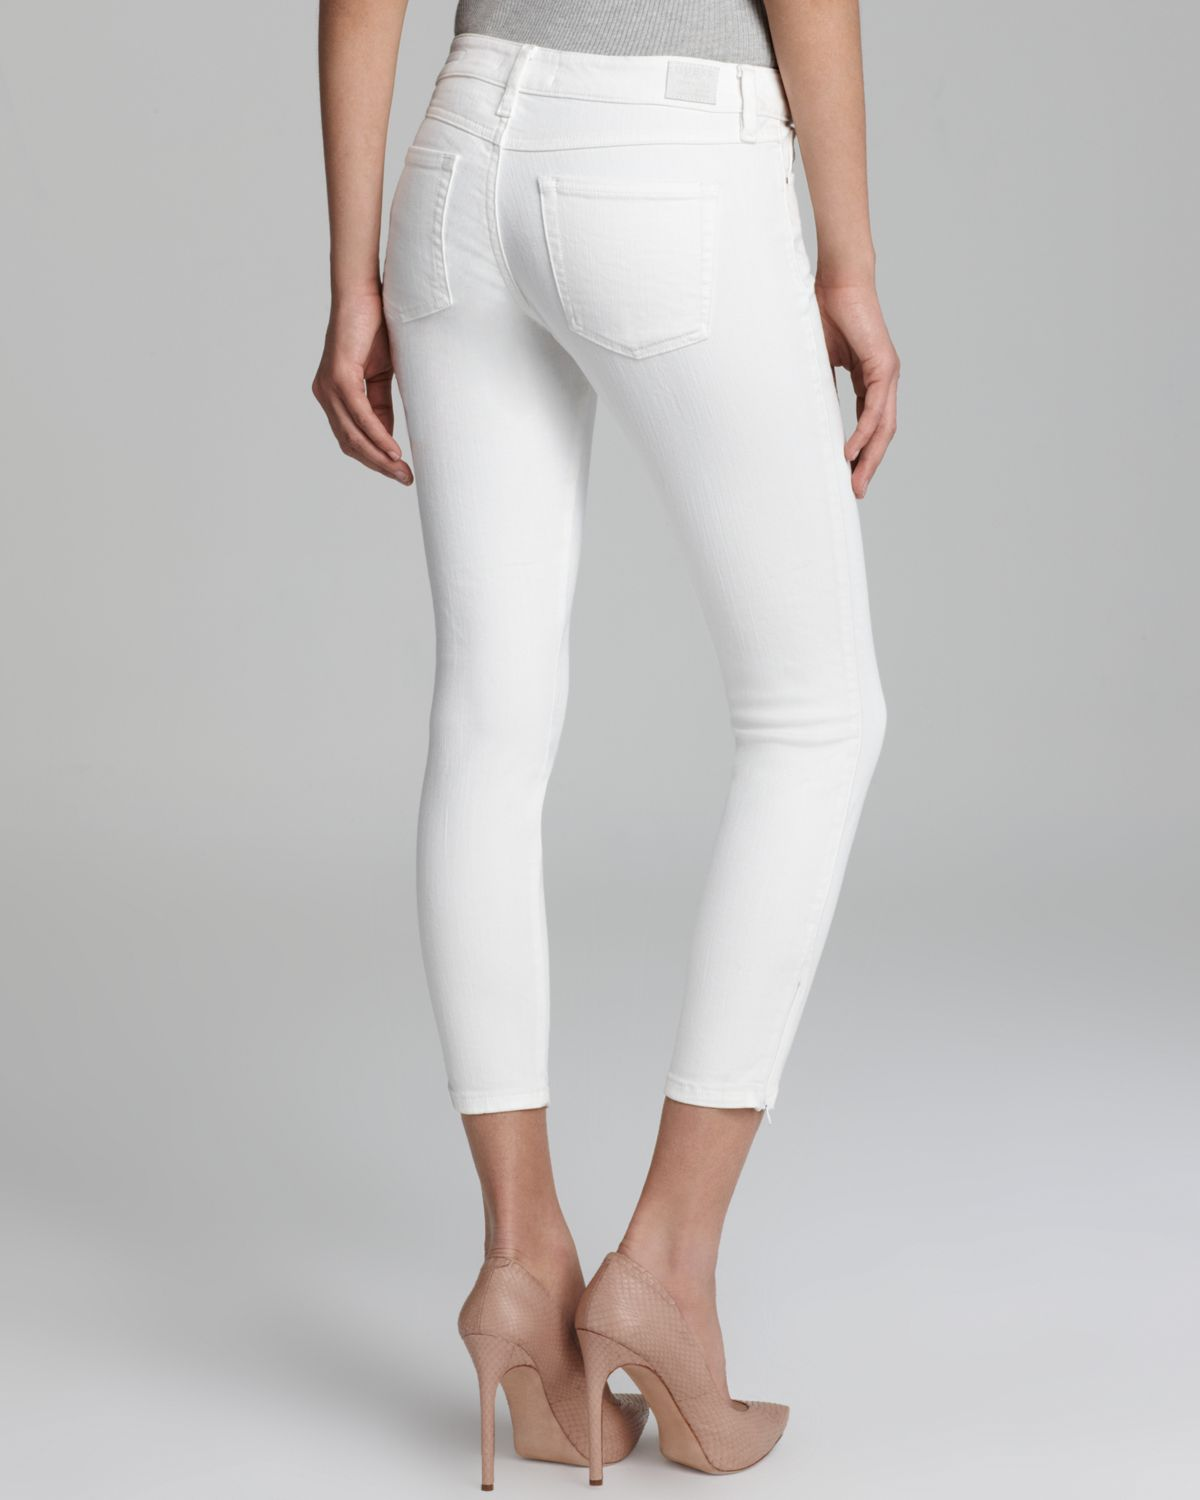 Guess Jeans Brittney Zip Cropped in White | Lyst